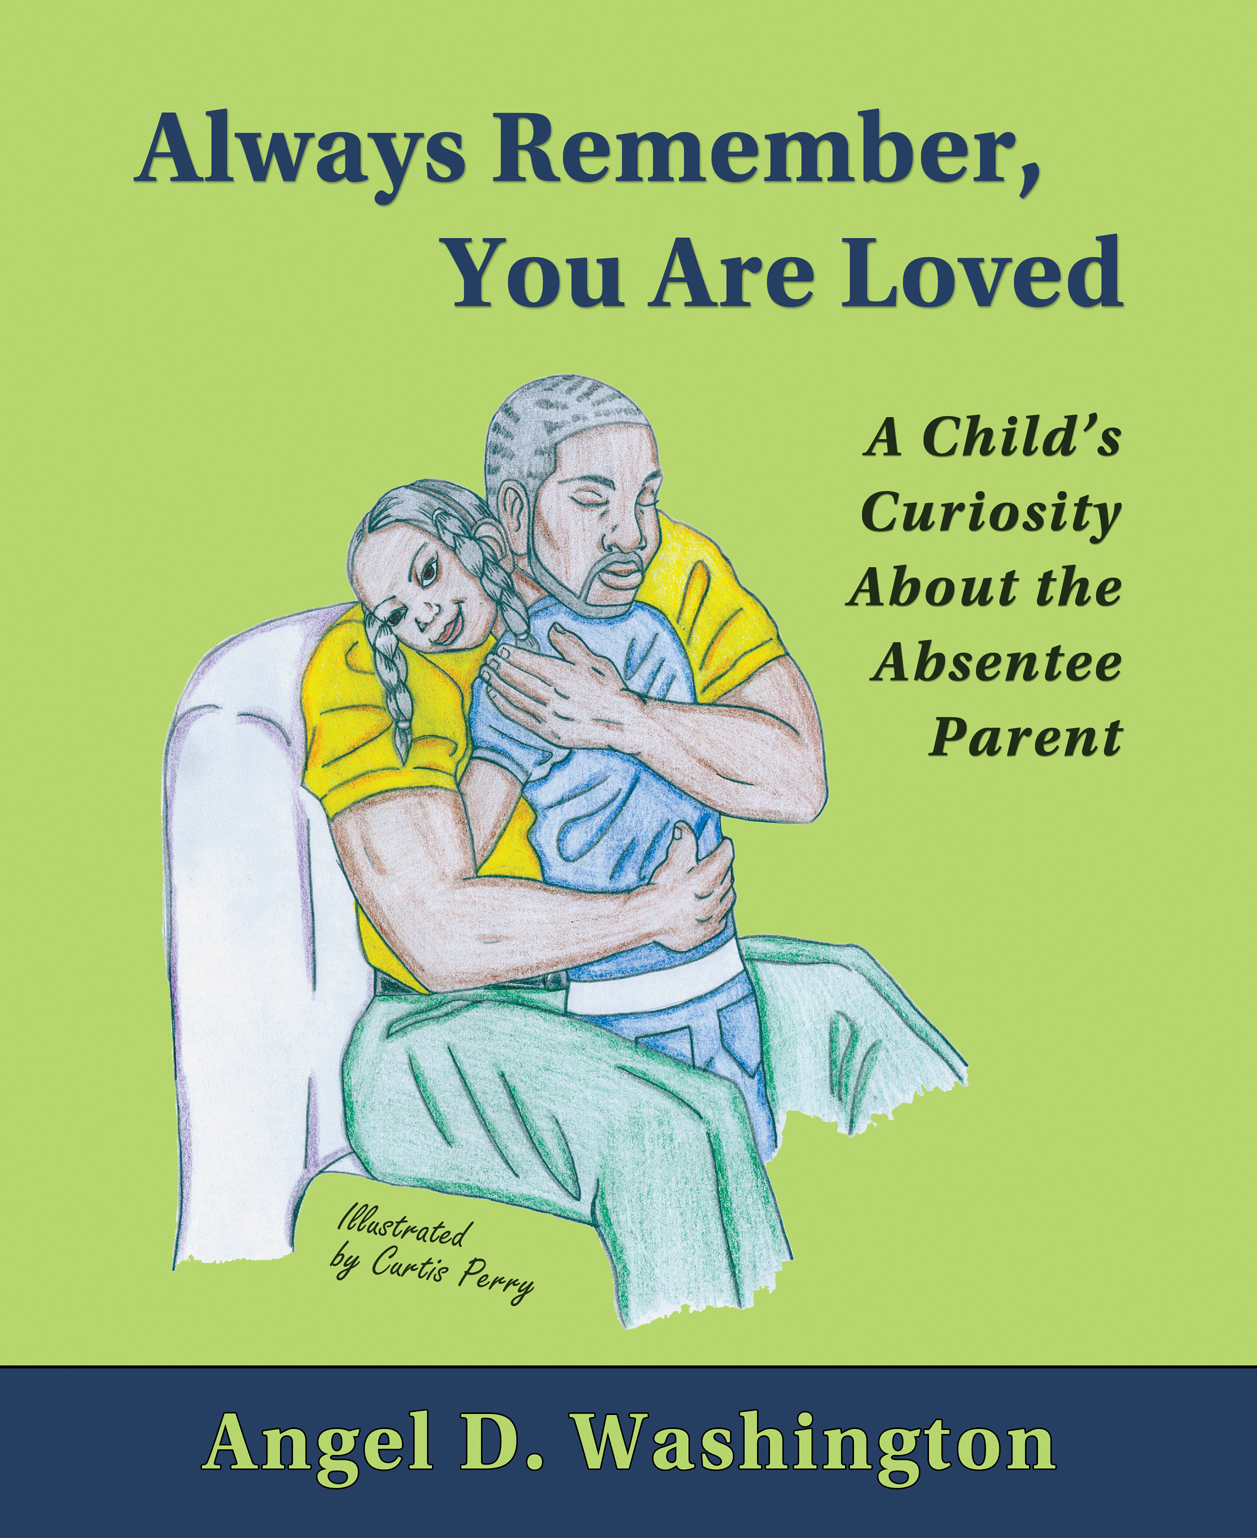 Always Remember You Are Loved: Always Remember, You Are Loved By Angel D. Washington